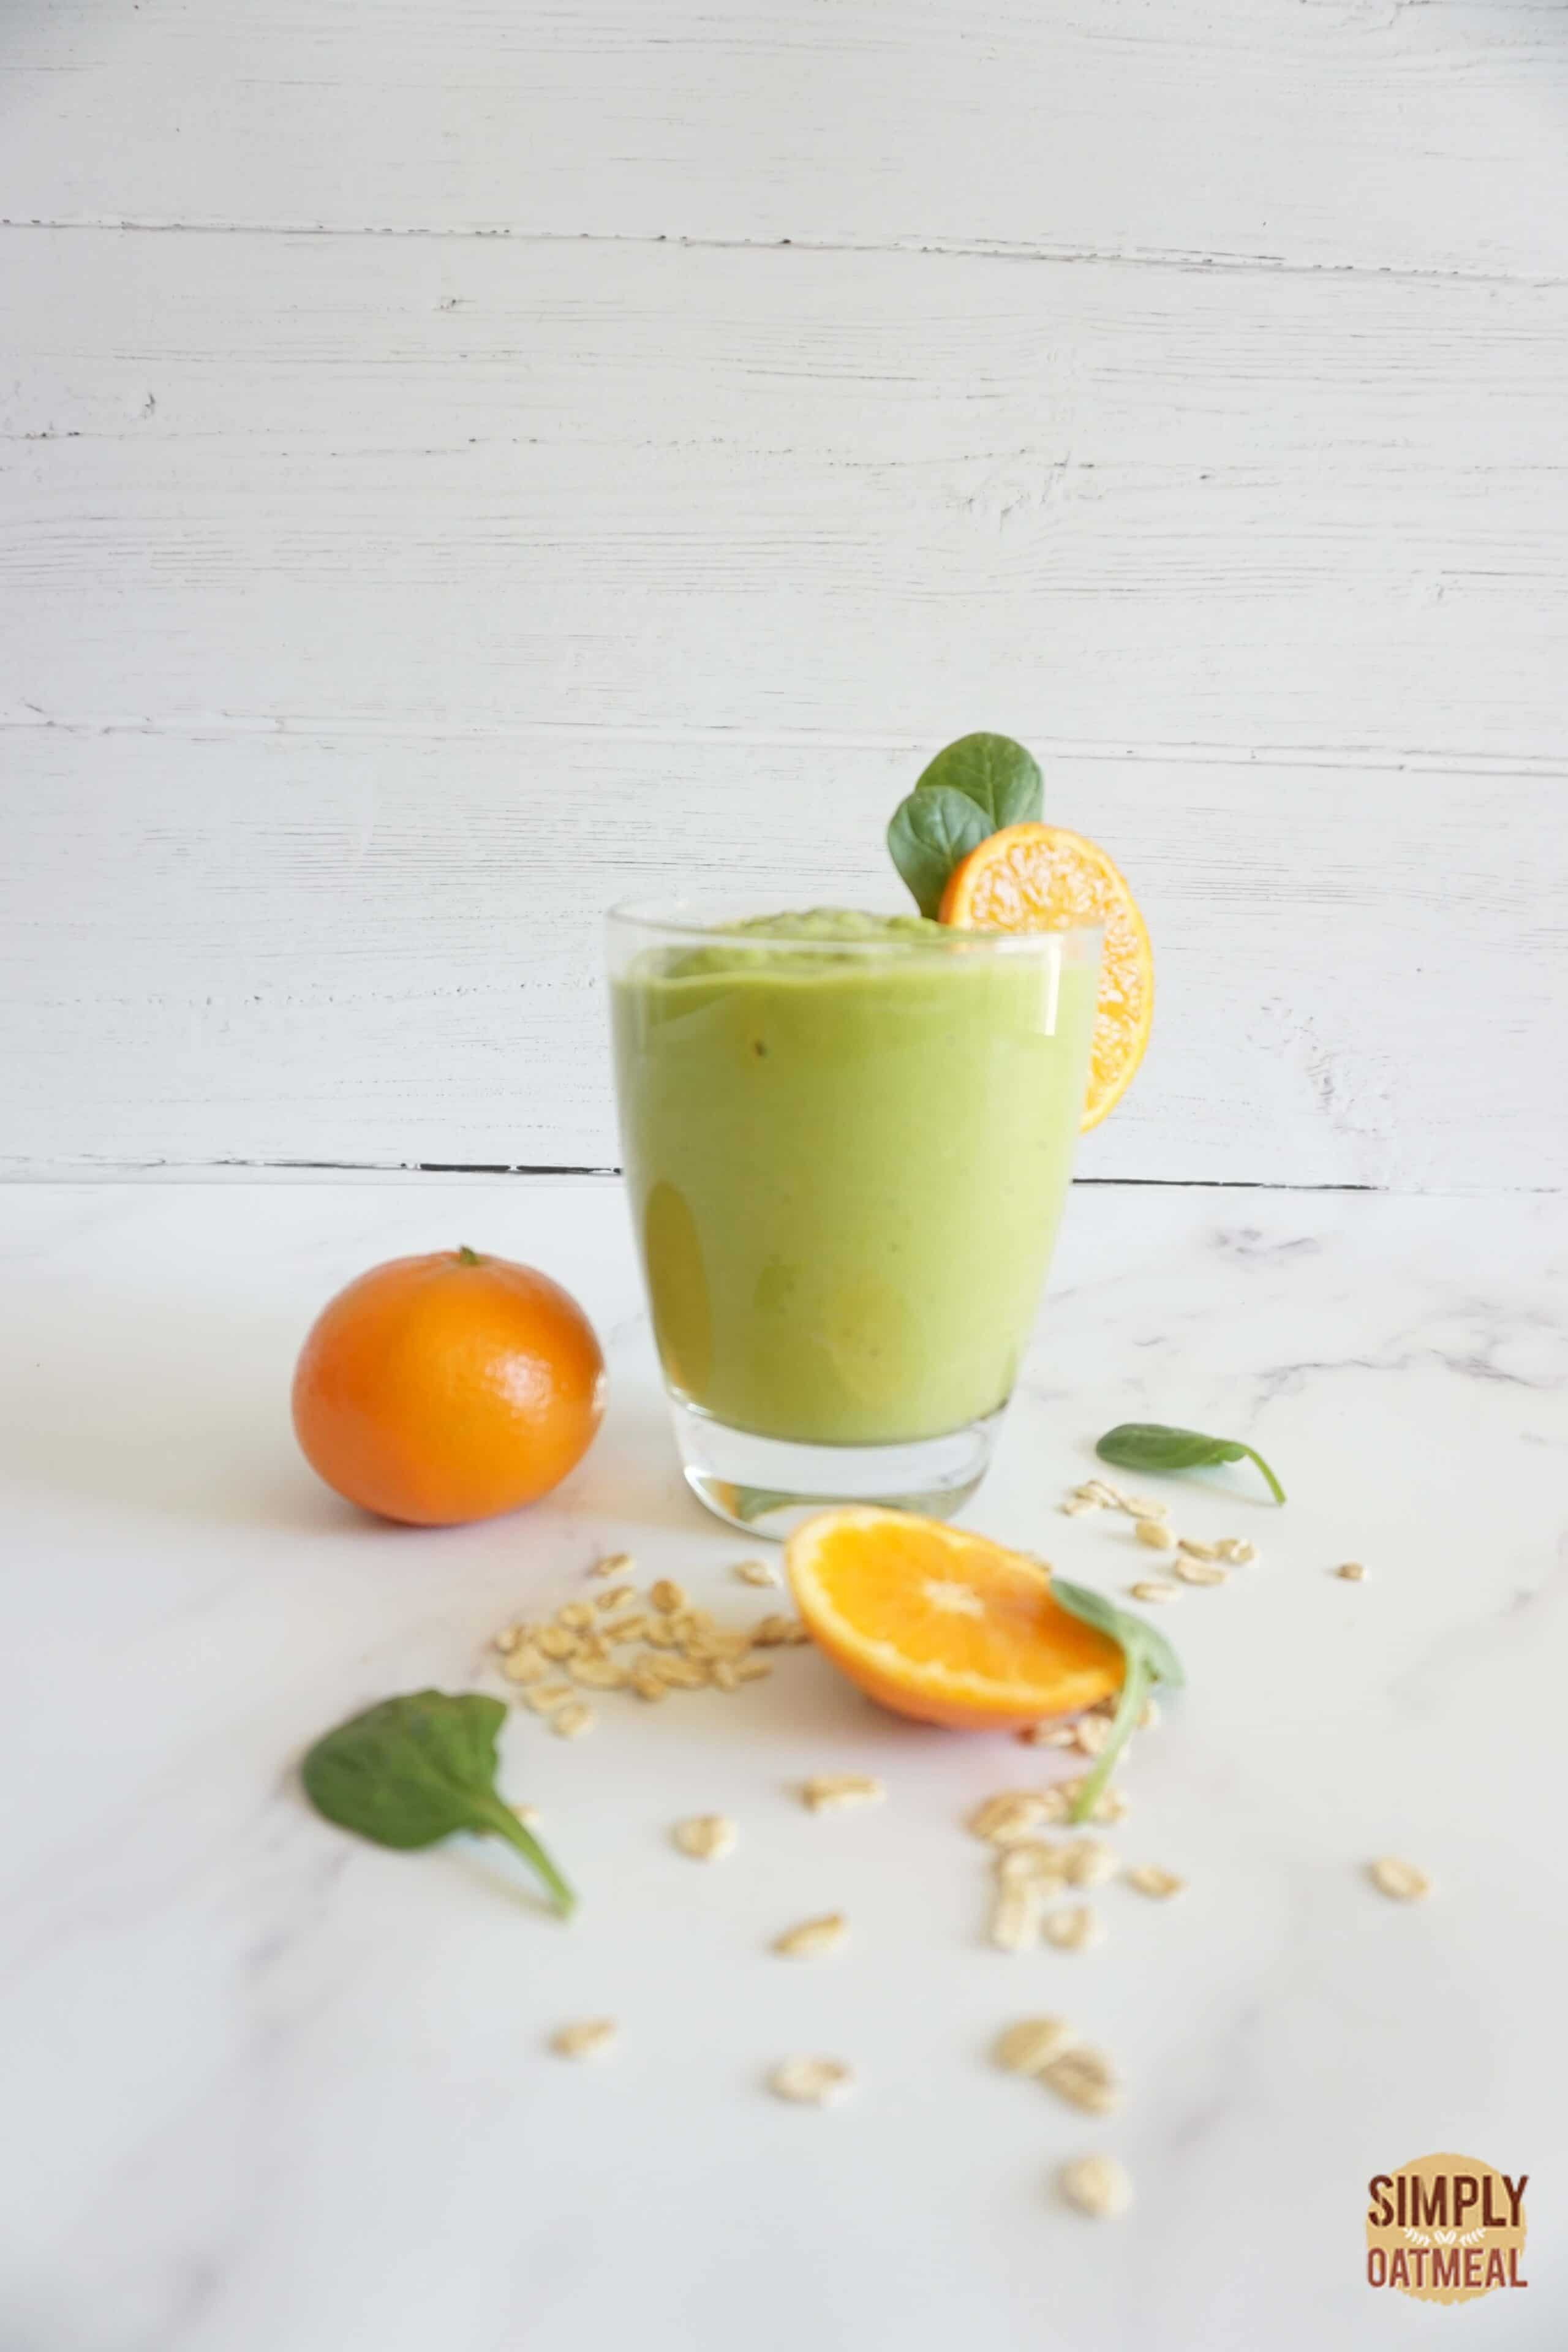 Single serving of avocado dreamsicle oatmeal smoothie in a glass cup.